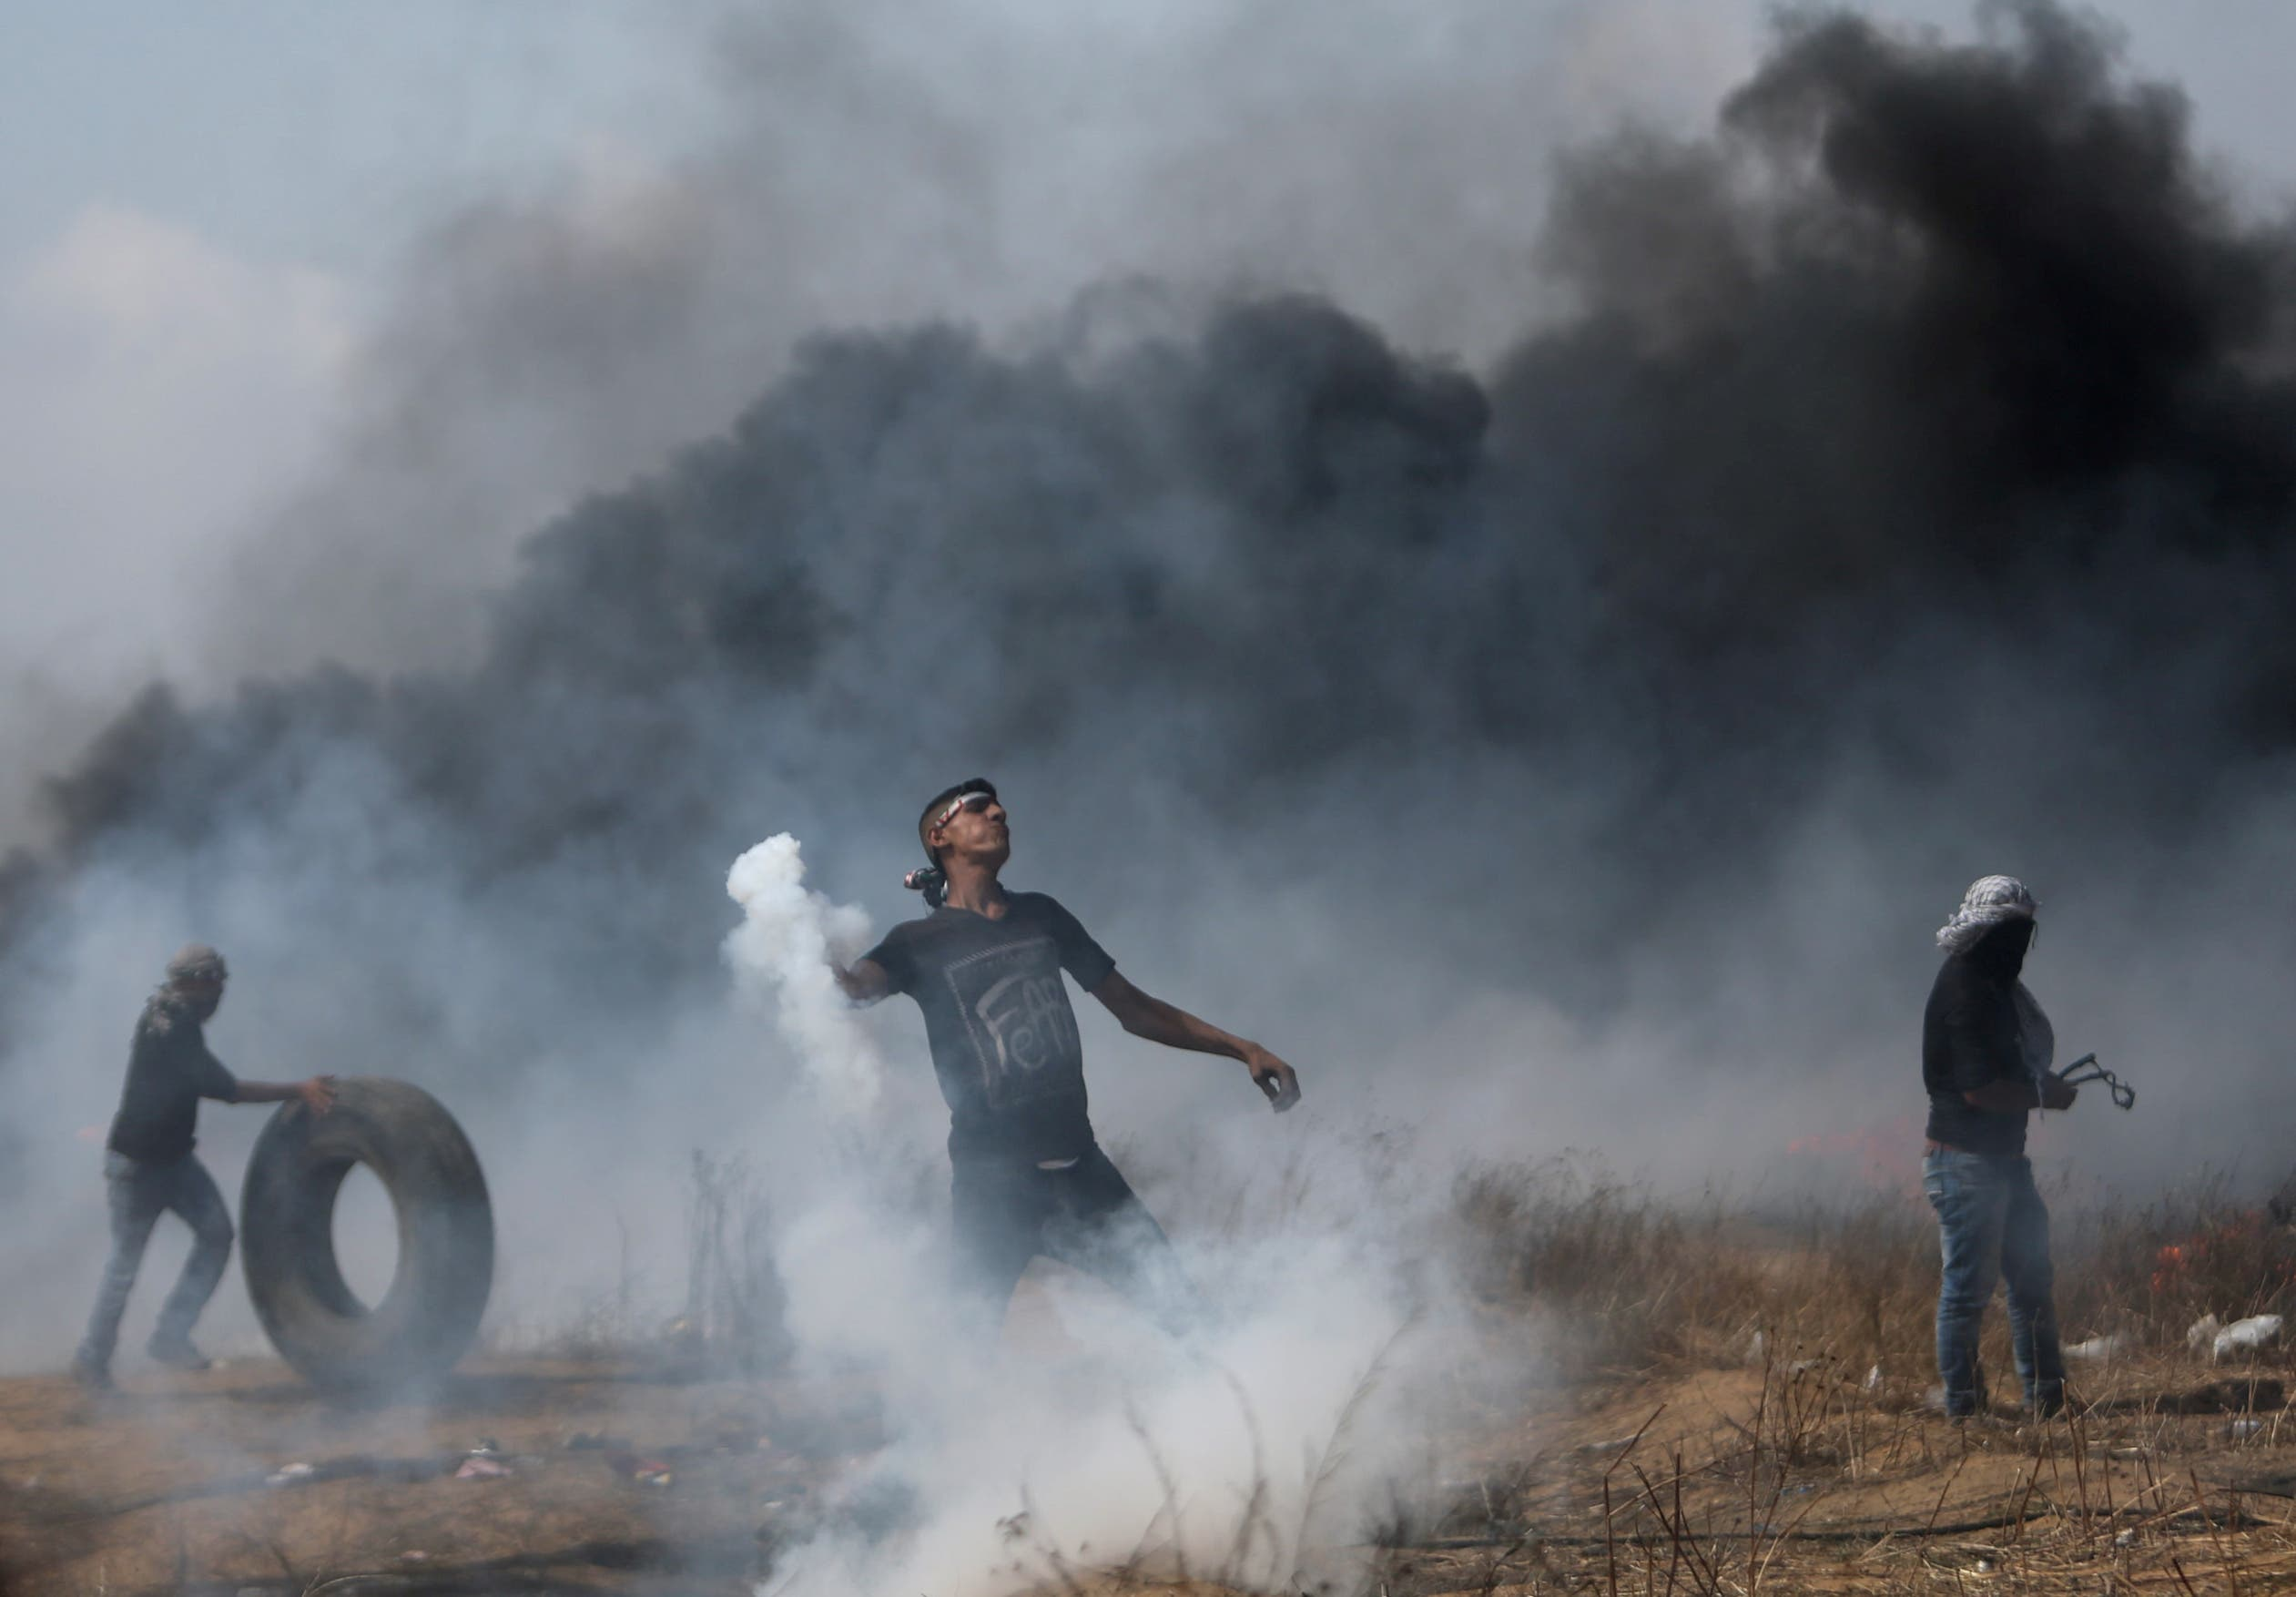 A demonstrator hurls back a tear gas canister fired by Israeli troops during clashes at a protest where Palestinians demand the right to return to their homeland, at the Israel-Gaza border in the southern Gaza Strip, April 27, 2018. REUTERS/Ibraheem Abu Mustafa